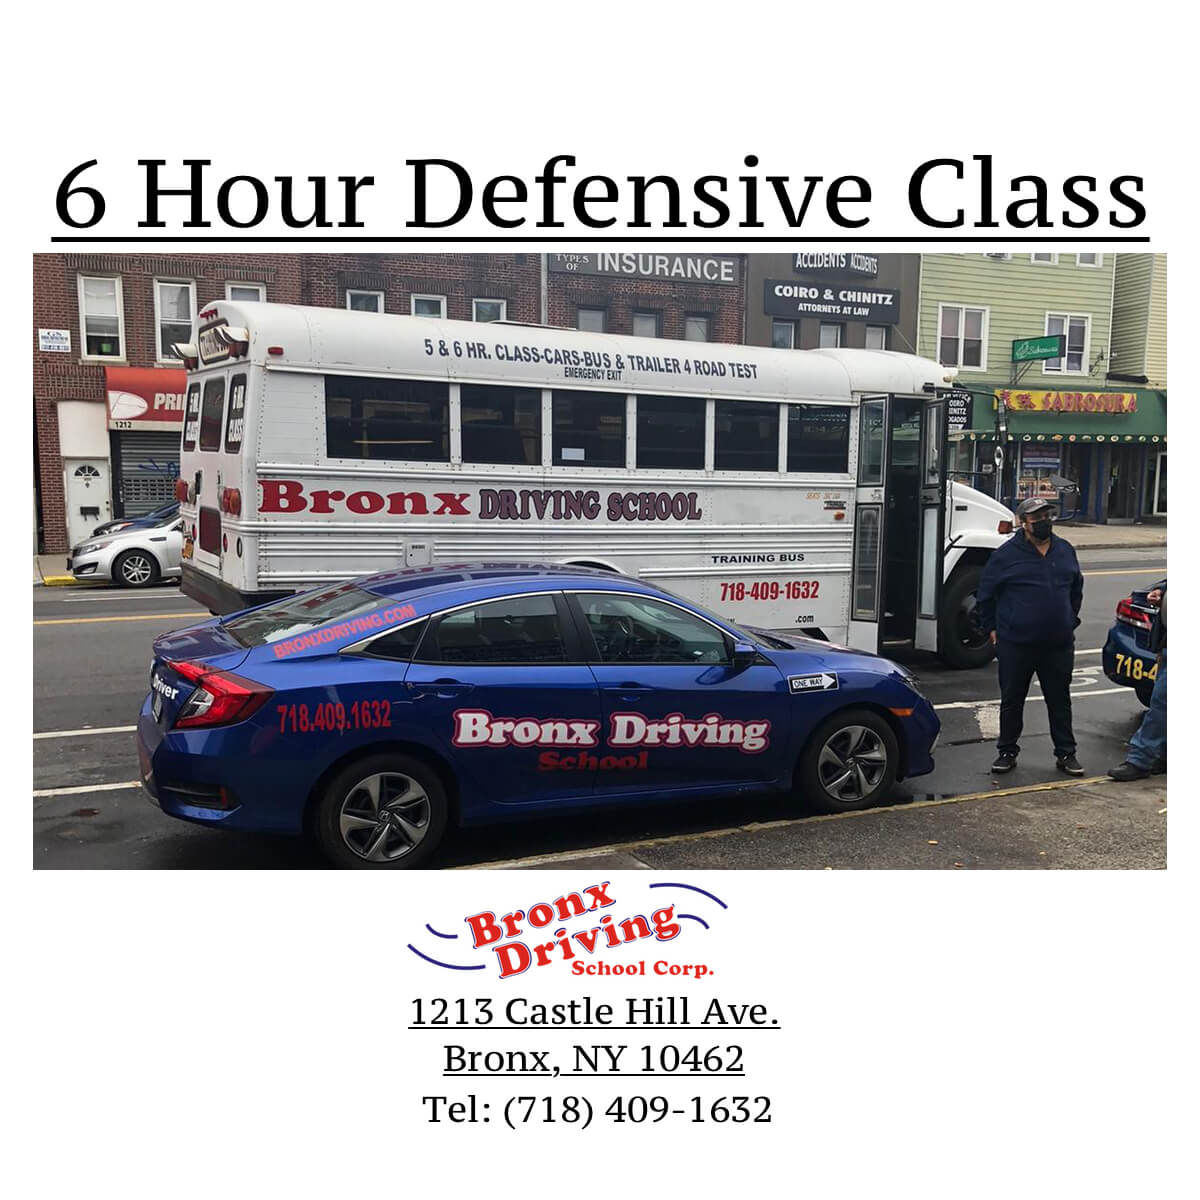 Bronx Driving School 6 Hour Defensive Class